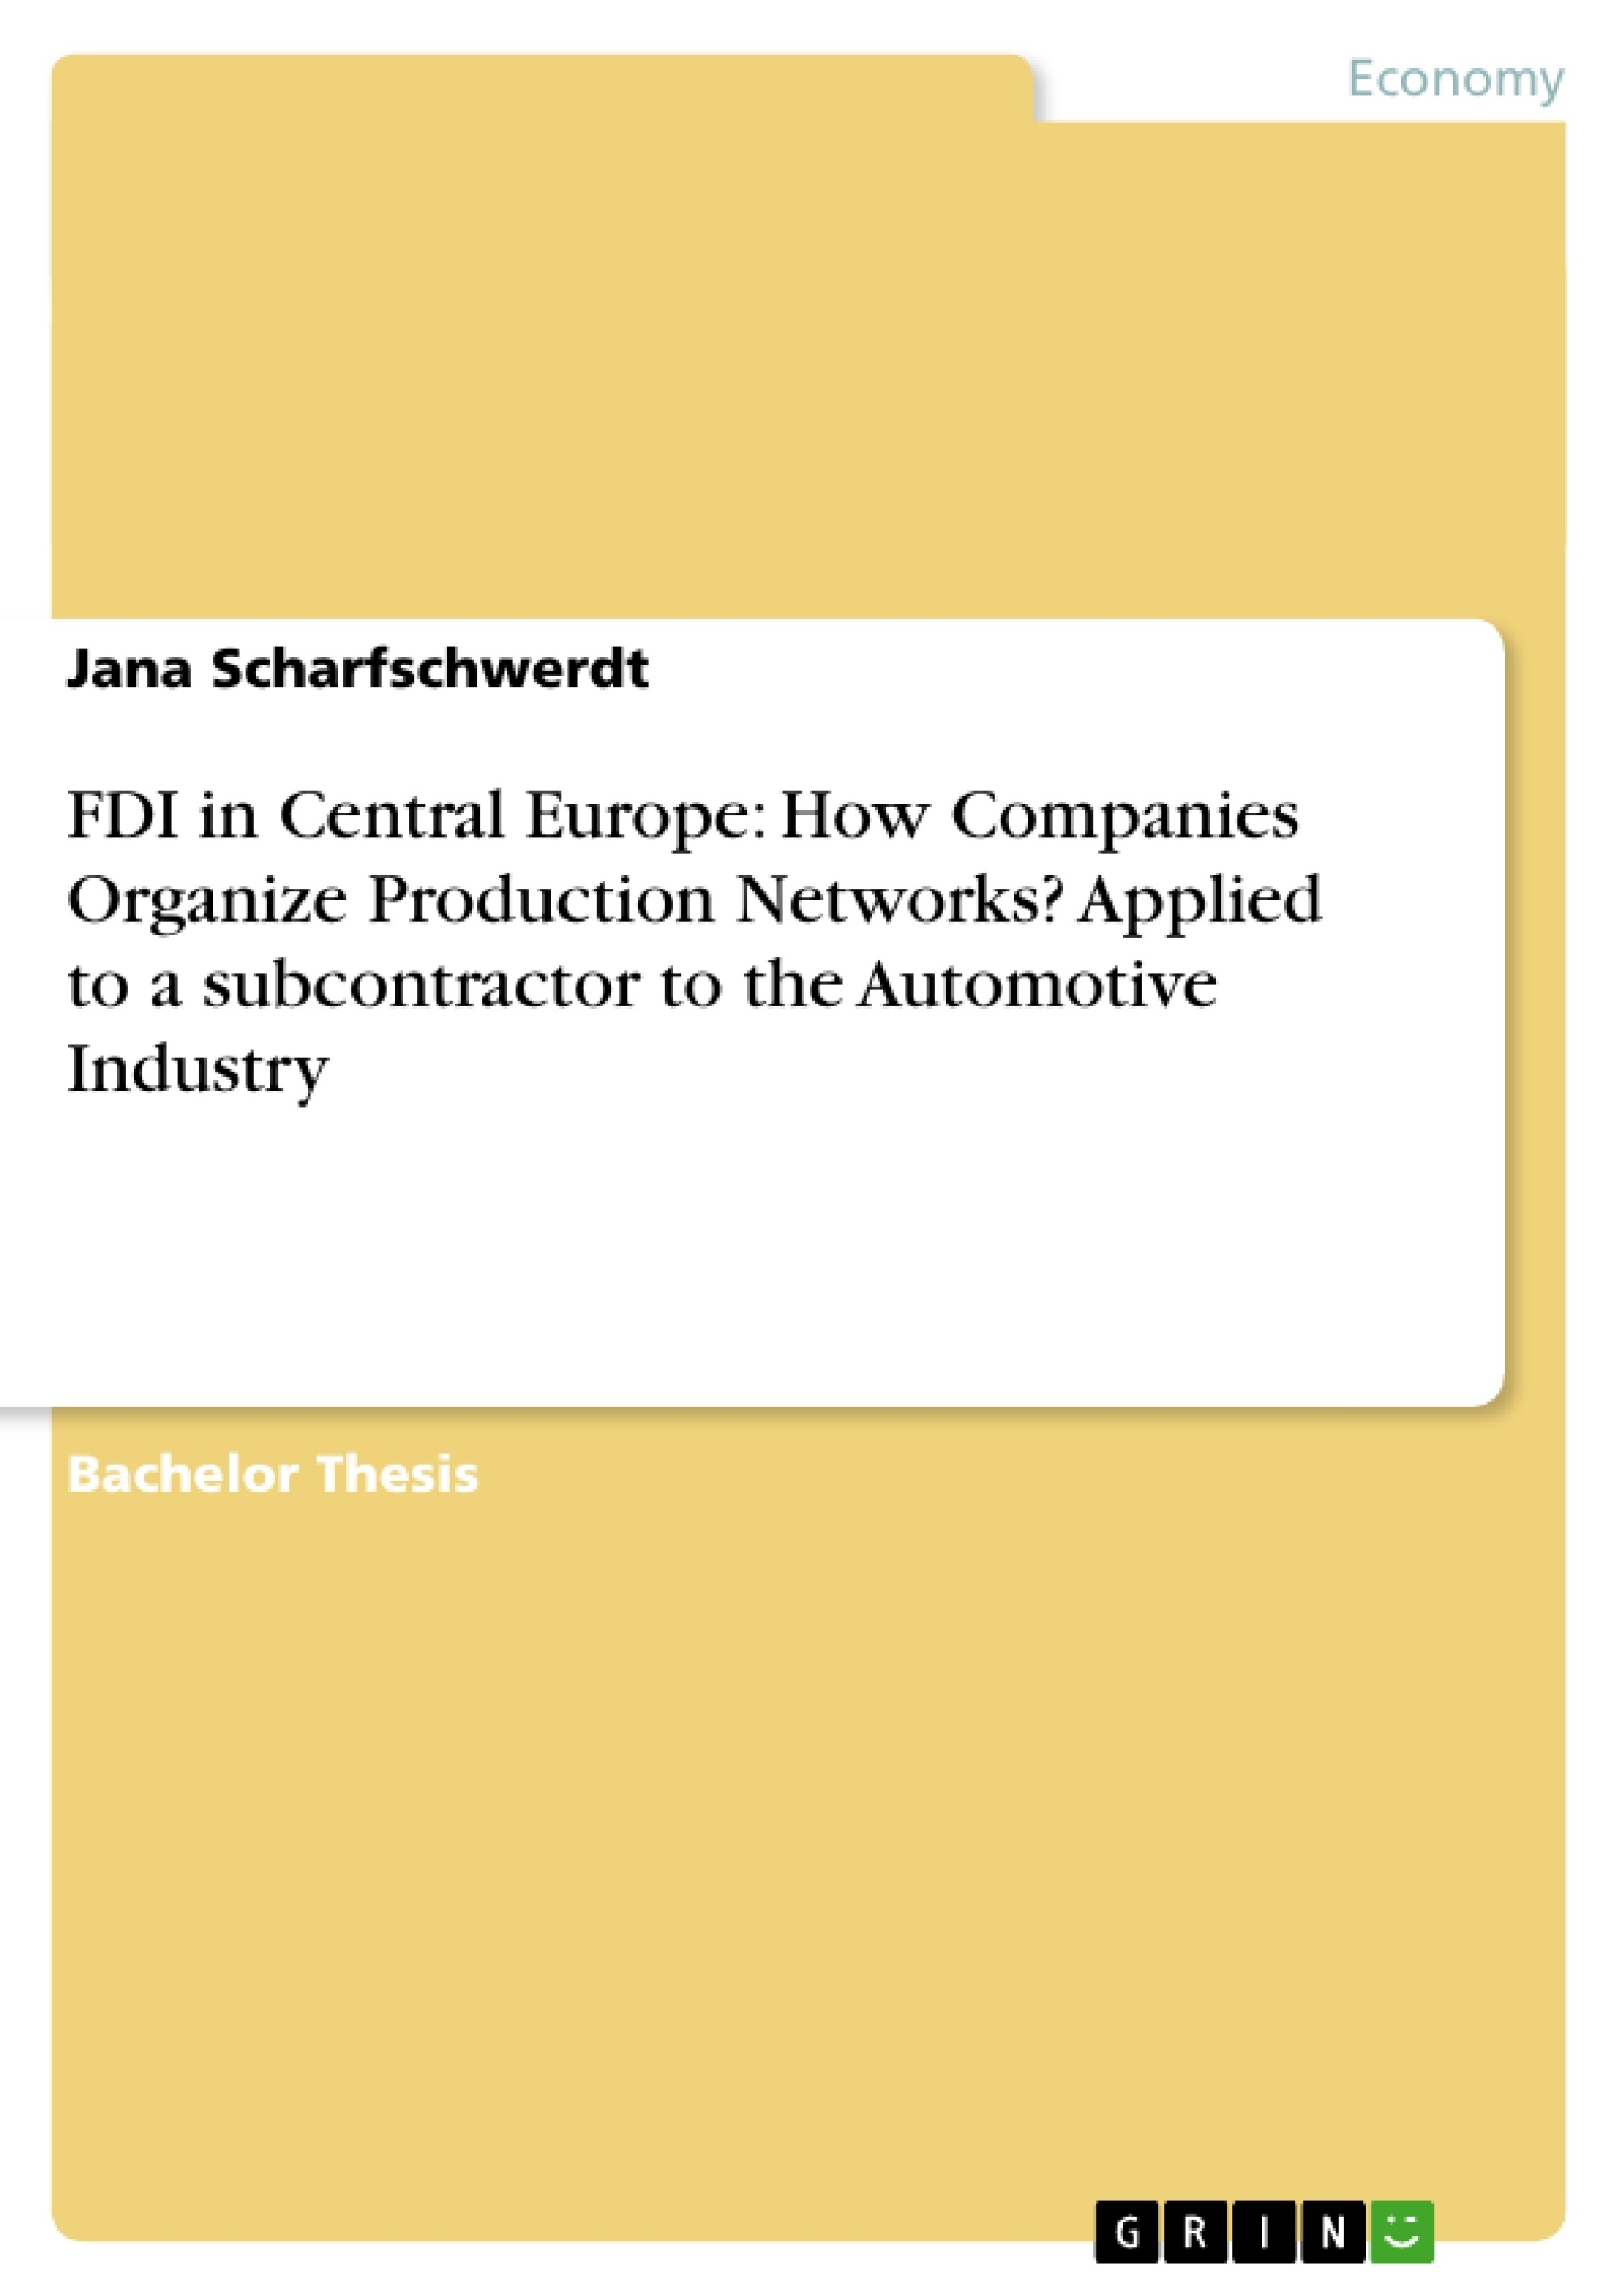 Title: FDI in Central Europe: How Companies Organize Production Networks? Applied to a subcontractor to the Automotive Industry